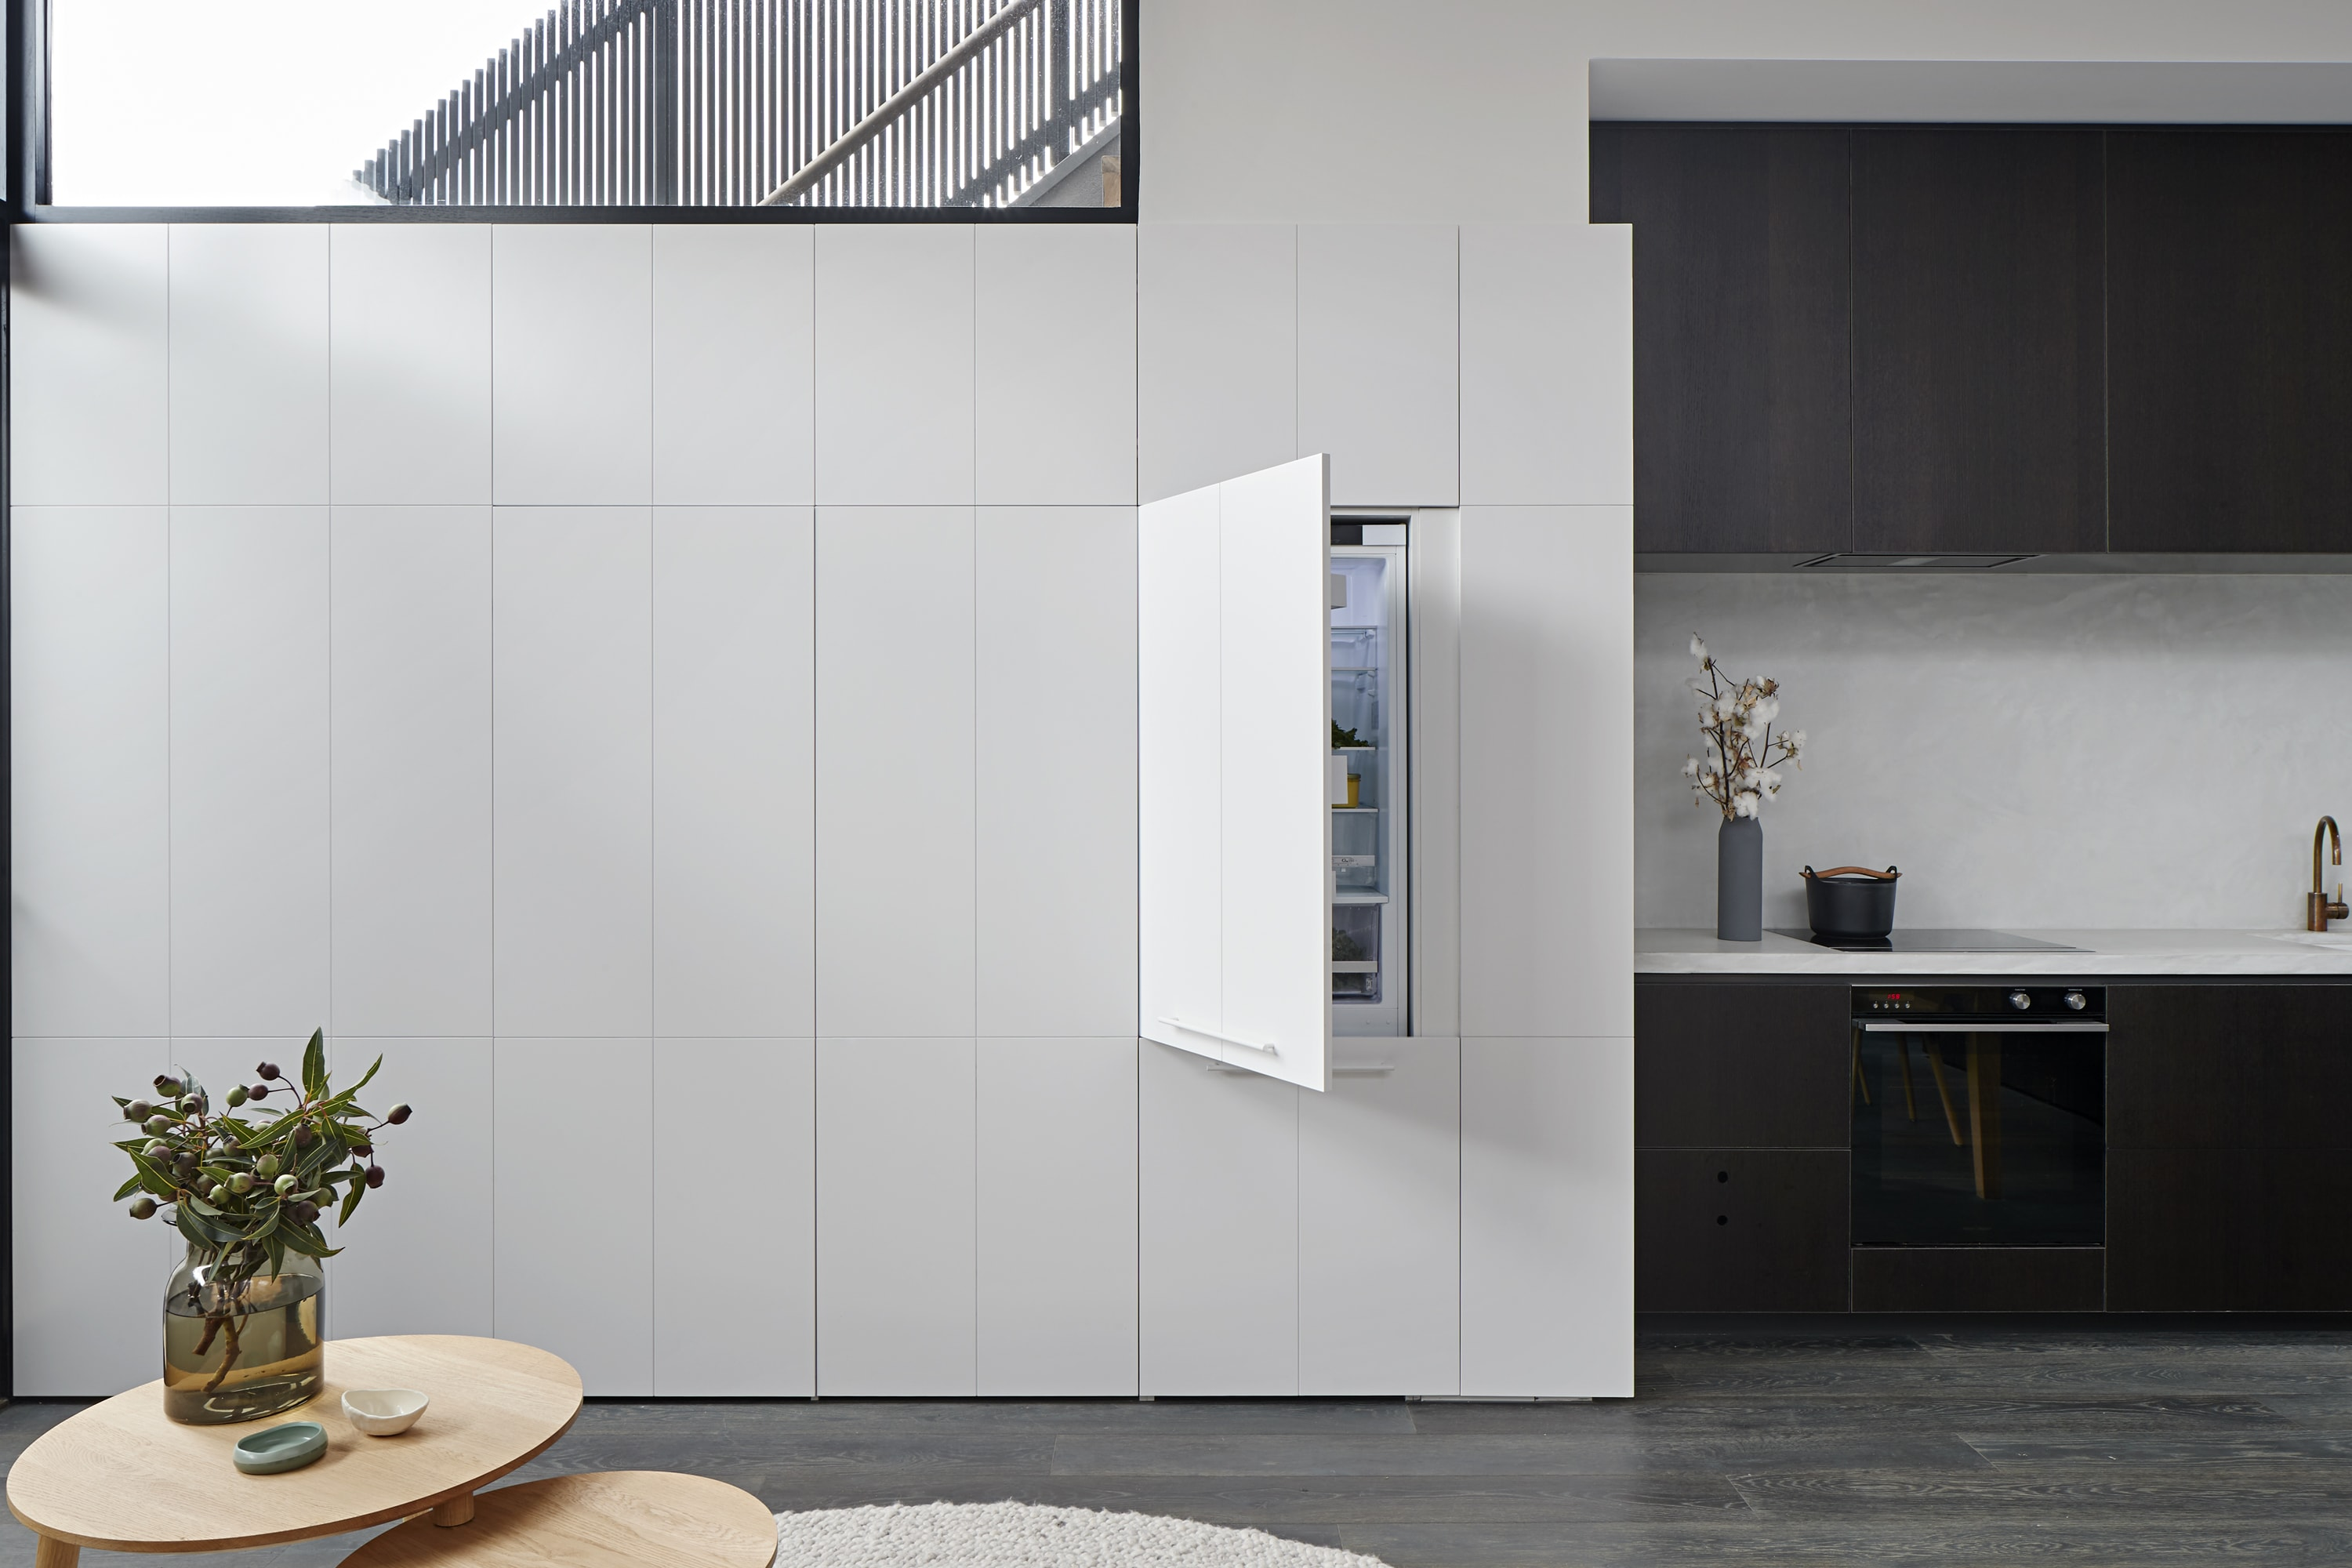 The Pocket House By Whiting Architects The Fisher & Paykel Series Melbourne, Victoria, Australiaf&p Whiting Littleogrady ©smg 9176 Min